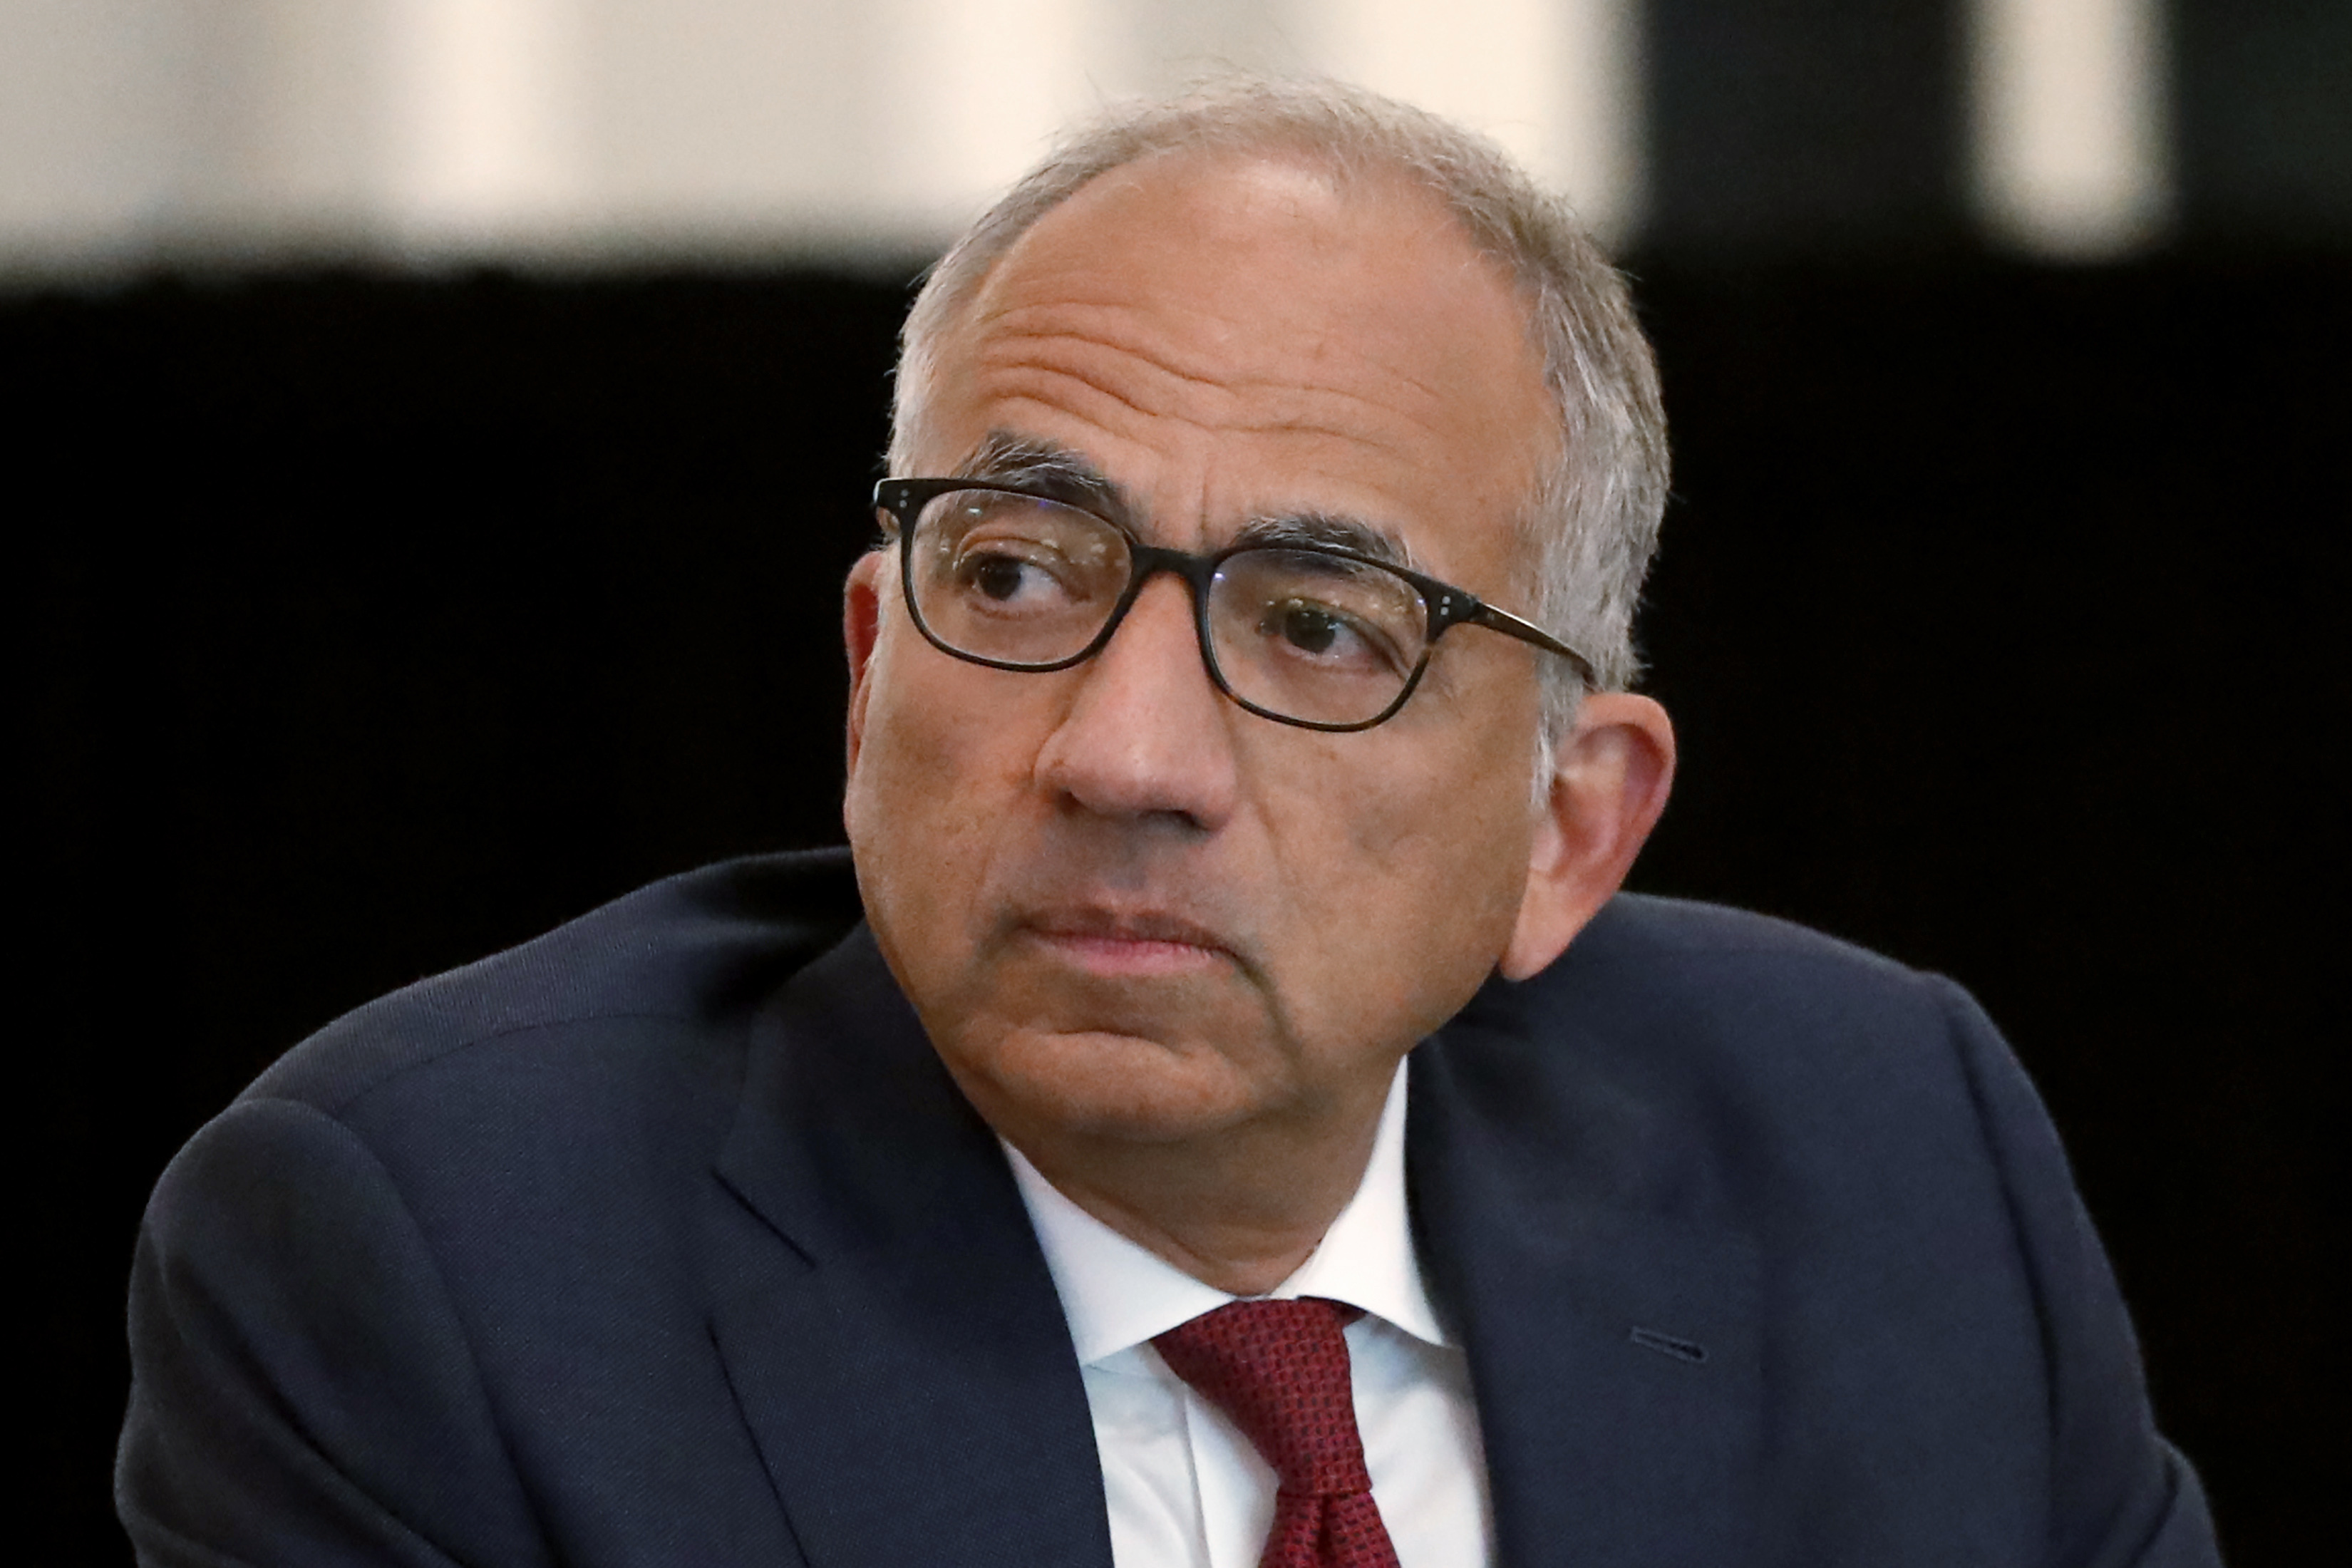 U.S. Soccer President Carlos Cordeiro presides over a meeting of the U.S. Soccer Board of Directors in Chicago on Dec. 6, 2019.